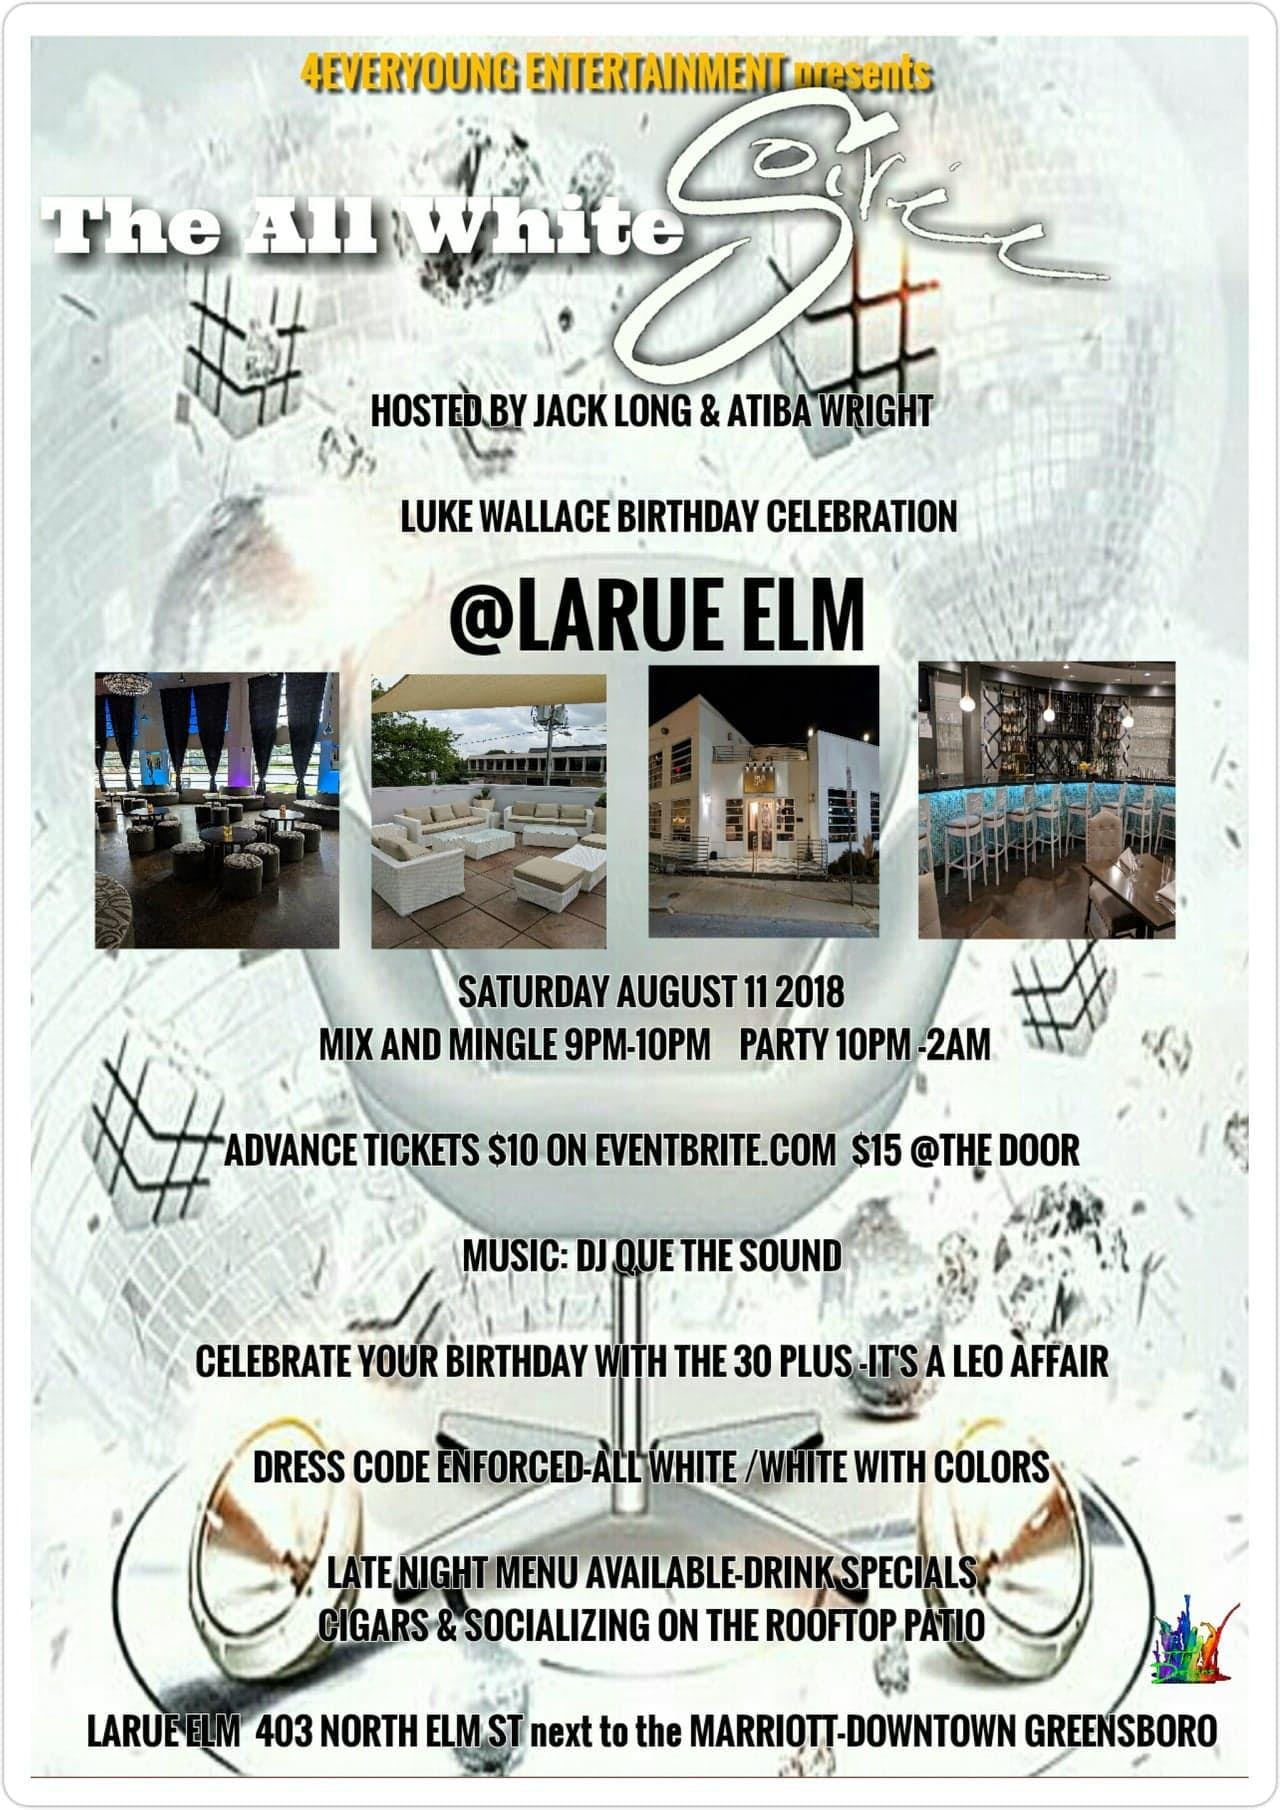 THE ALL WHITE SOIREE-LUKE WALLACE BIRTHDAY PARTY @ LARUE ELM AUGUST 11 2018